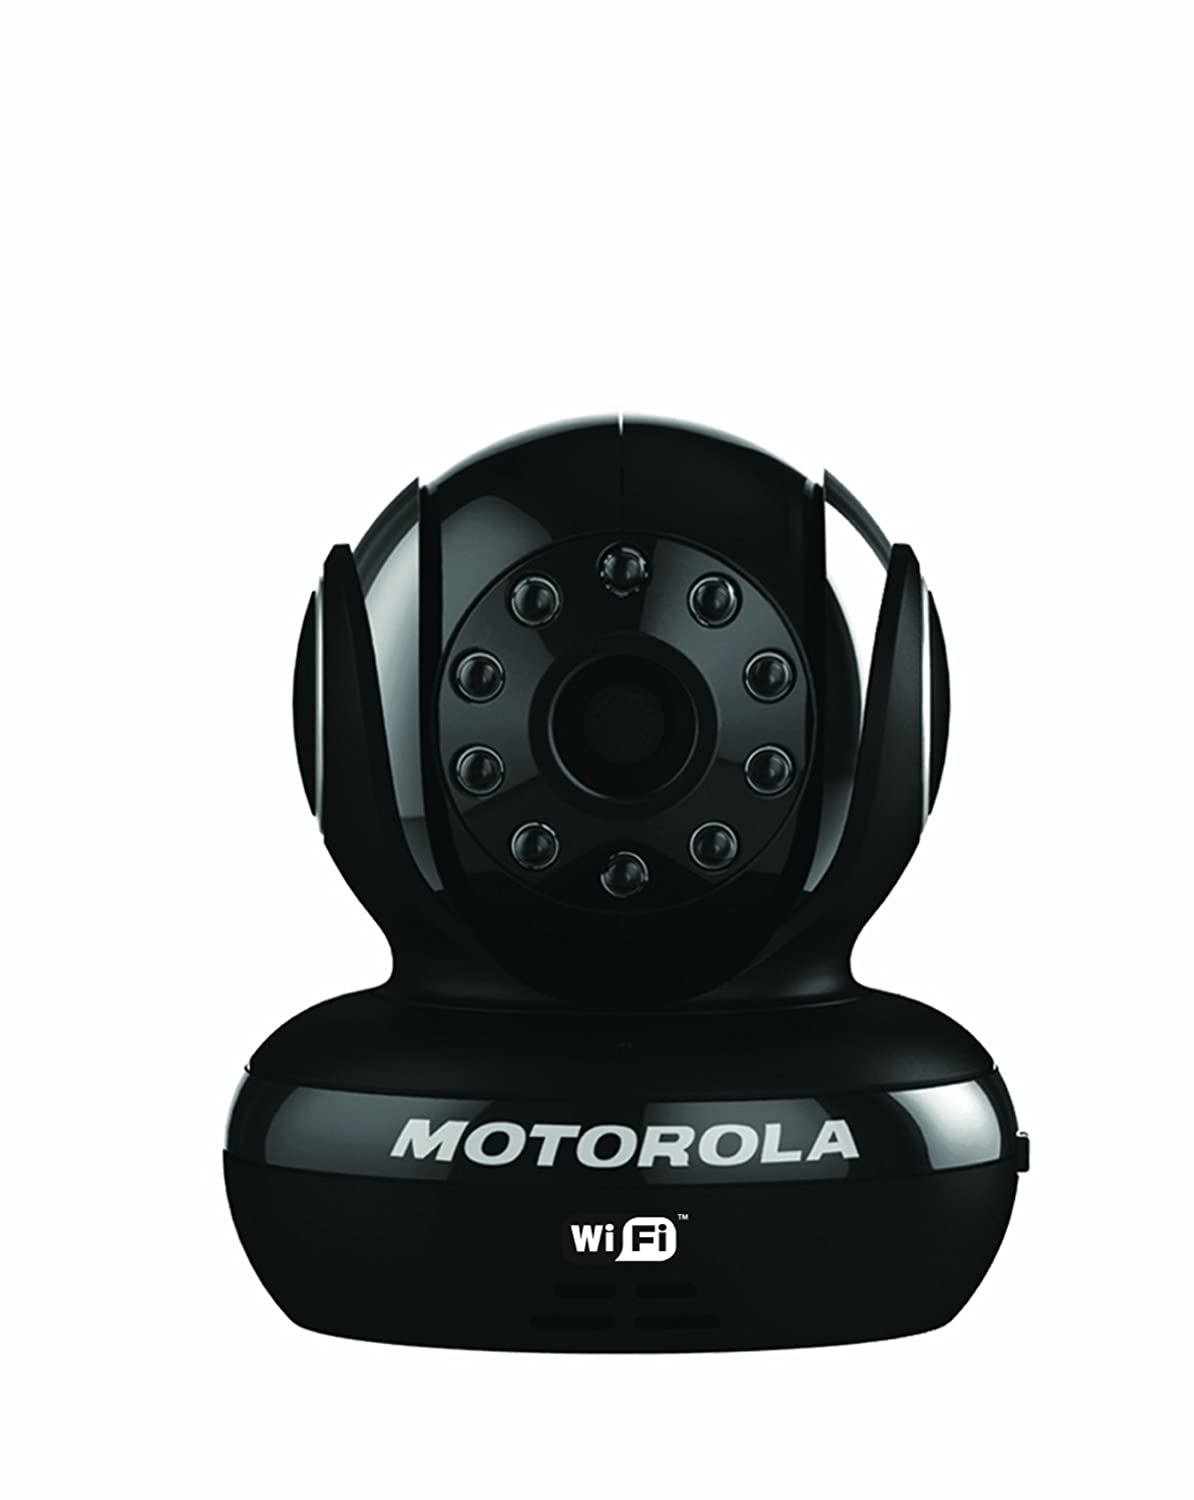 Motorola-Scout1-Wi-Fi-Pet-Monitor-for-Remote-Viewing-with-iPhone-and-Android-Smartphones-and-Tablets-Black